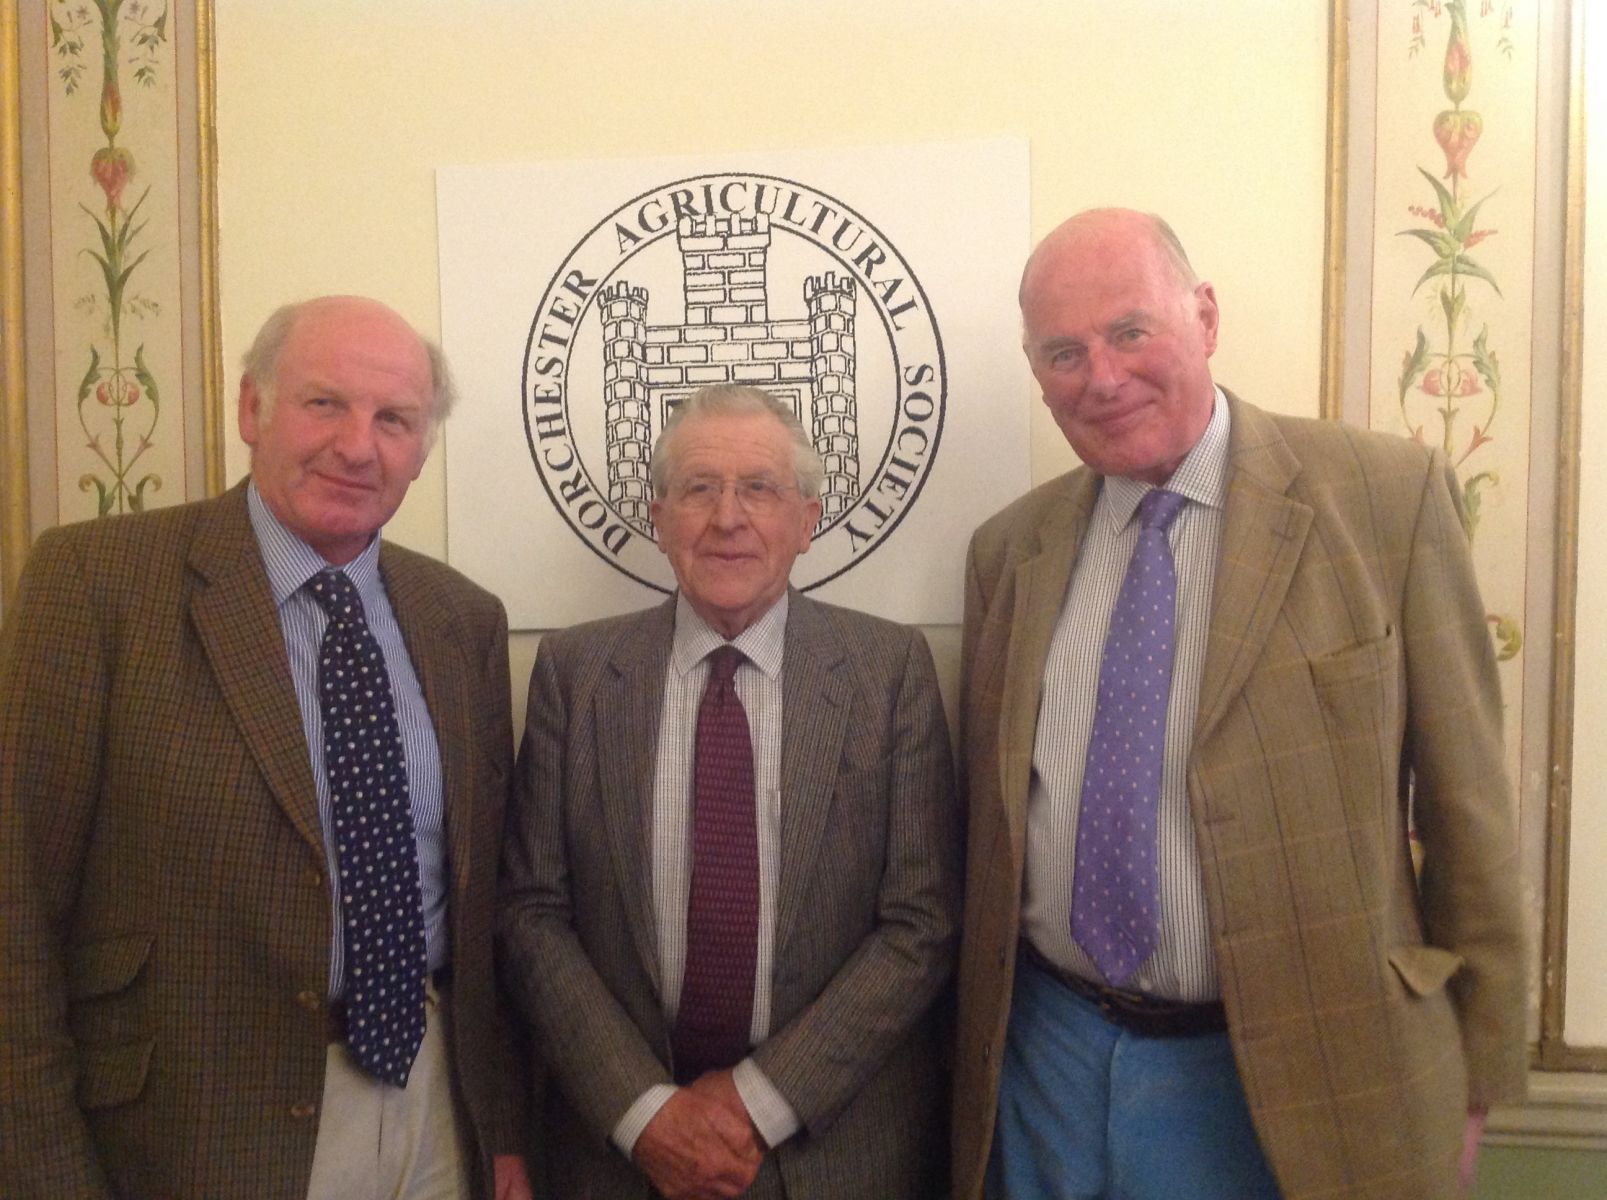 New President Elected for the Dorchester Agricultural Society